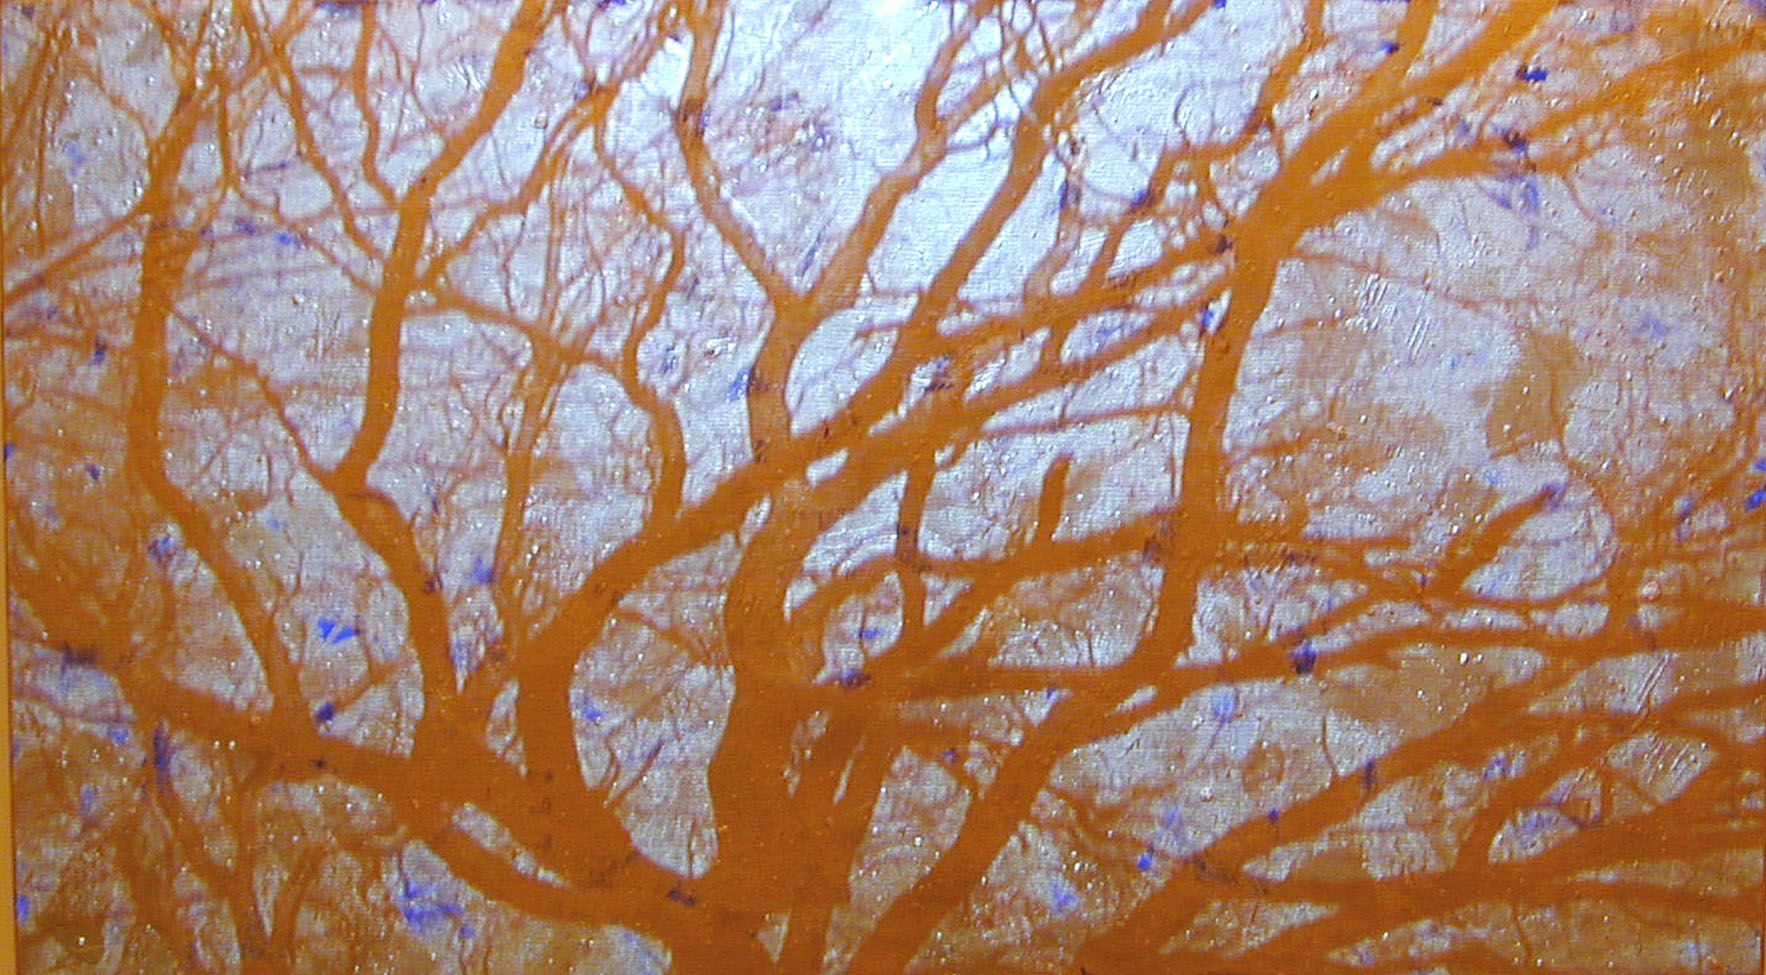 Gold / Blue Sky, 2003, Video projection, oil and enamel on linen